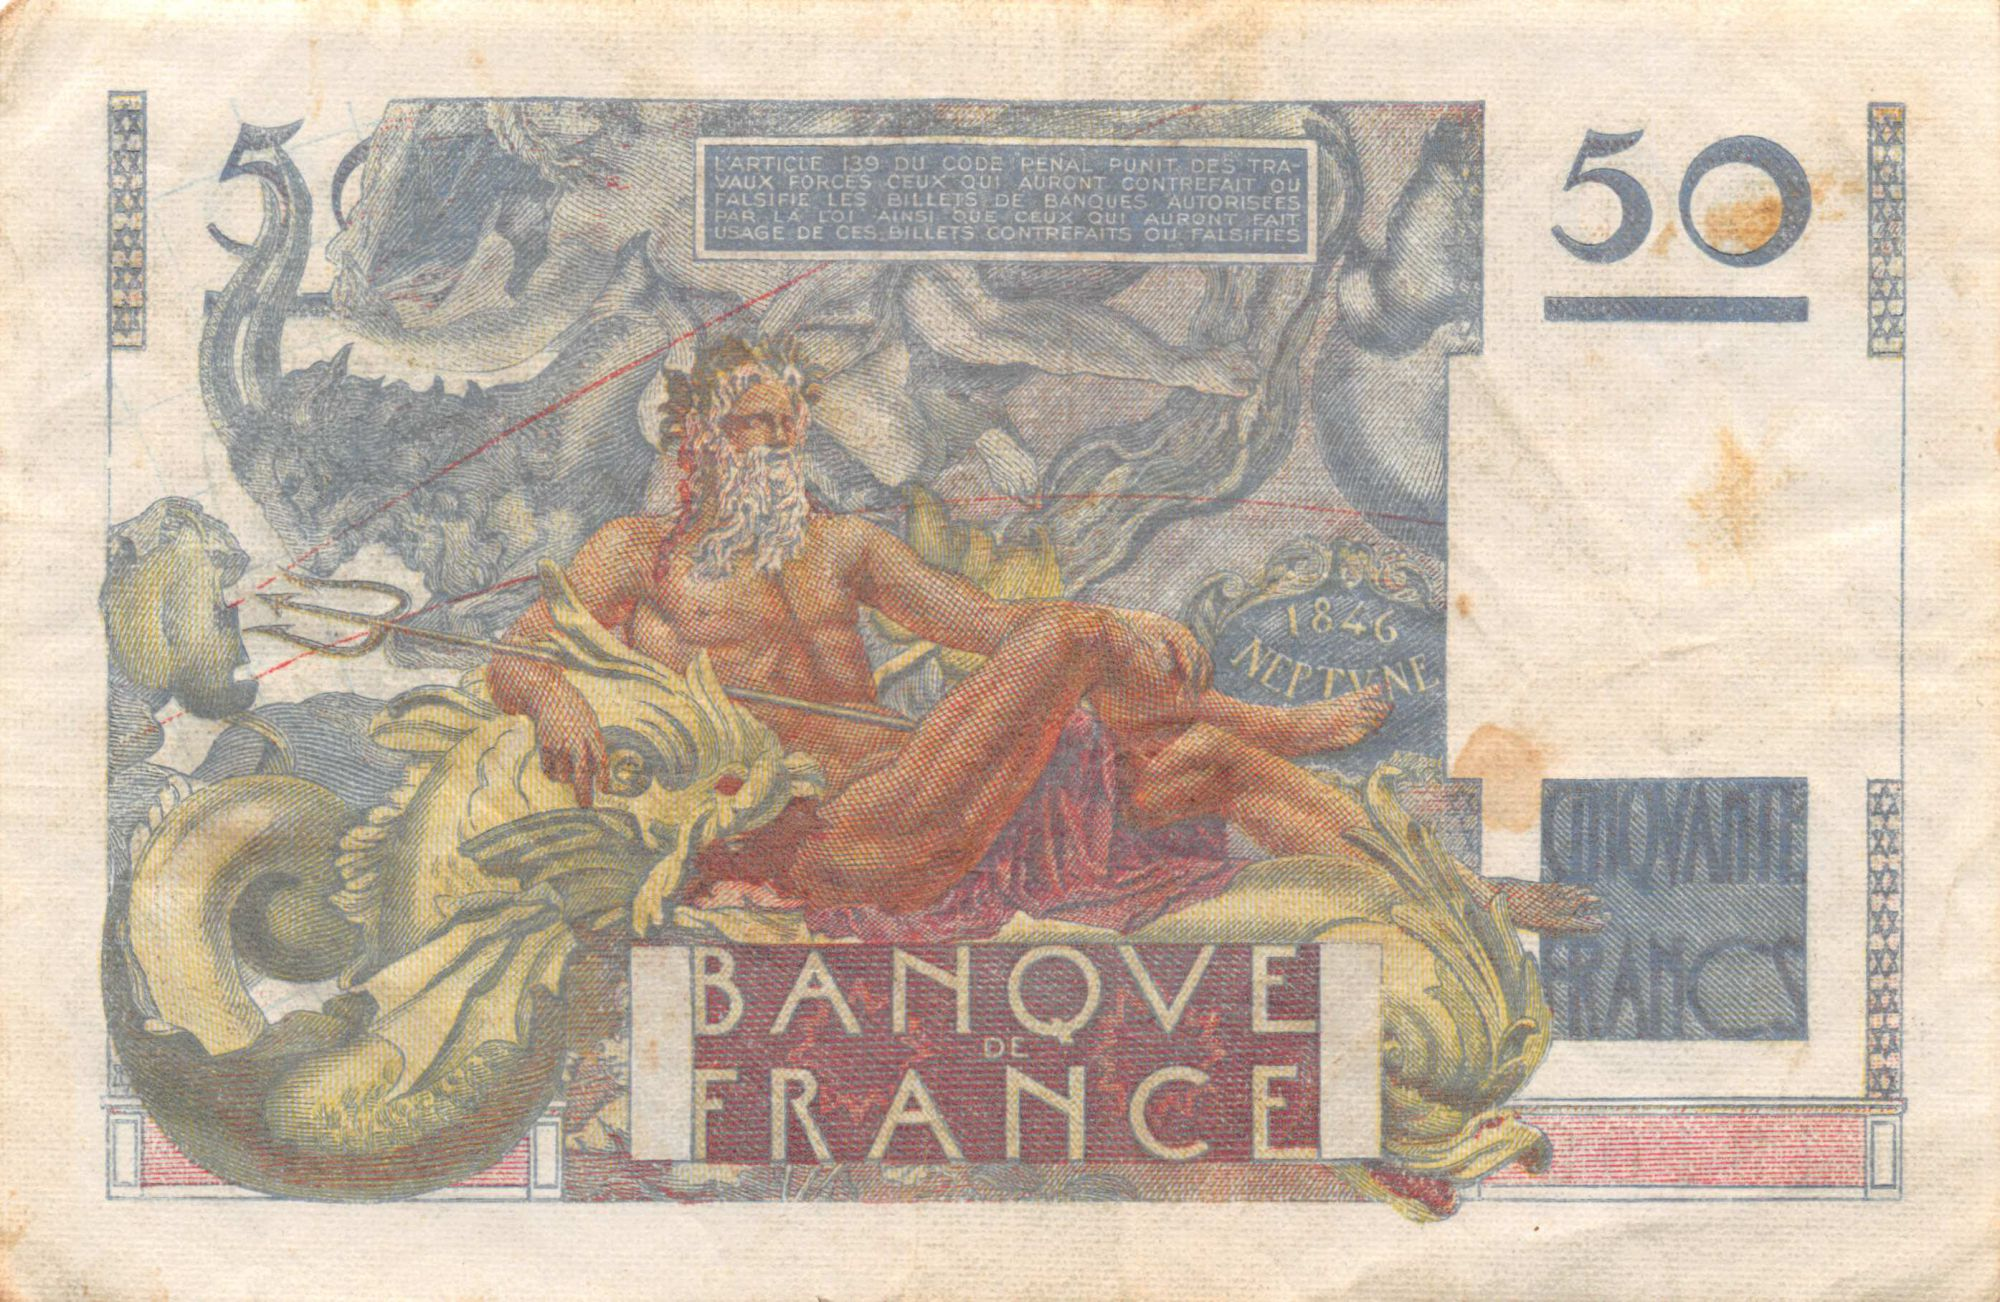 France 50 Francs - Le Verrier 19-05-1949 - Serial V.135 - VF